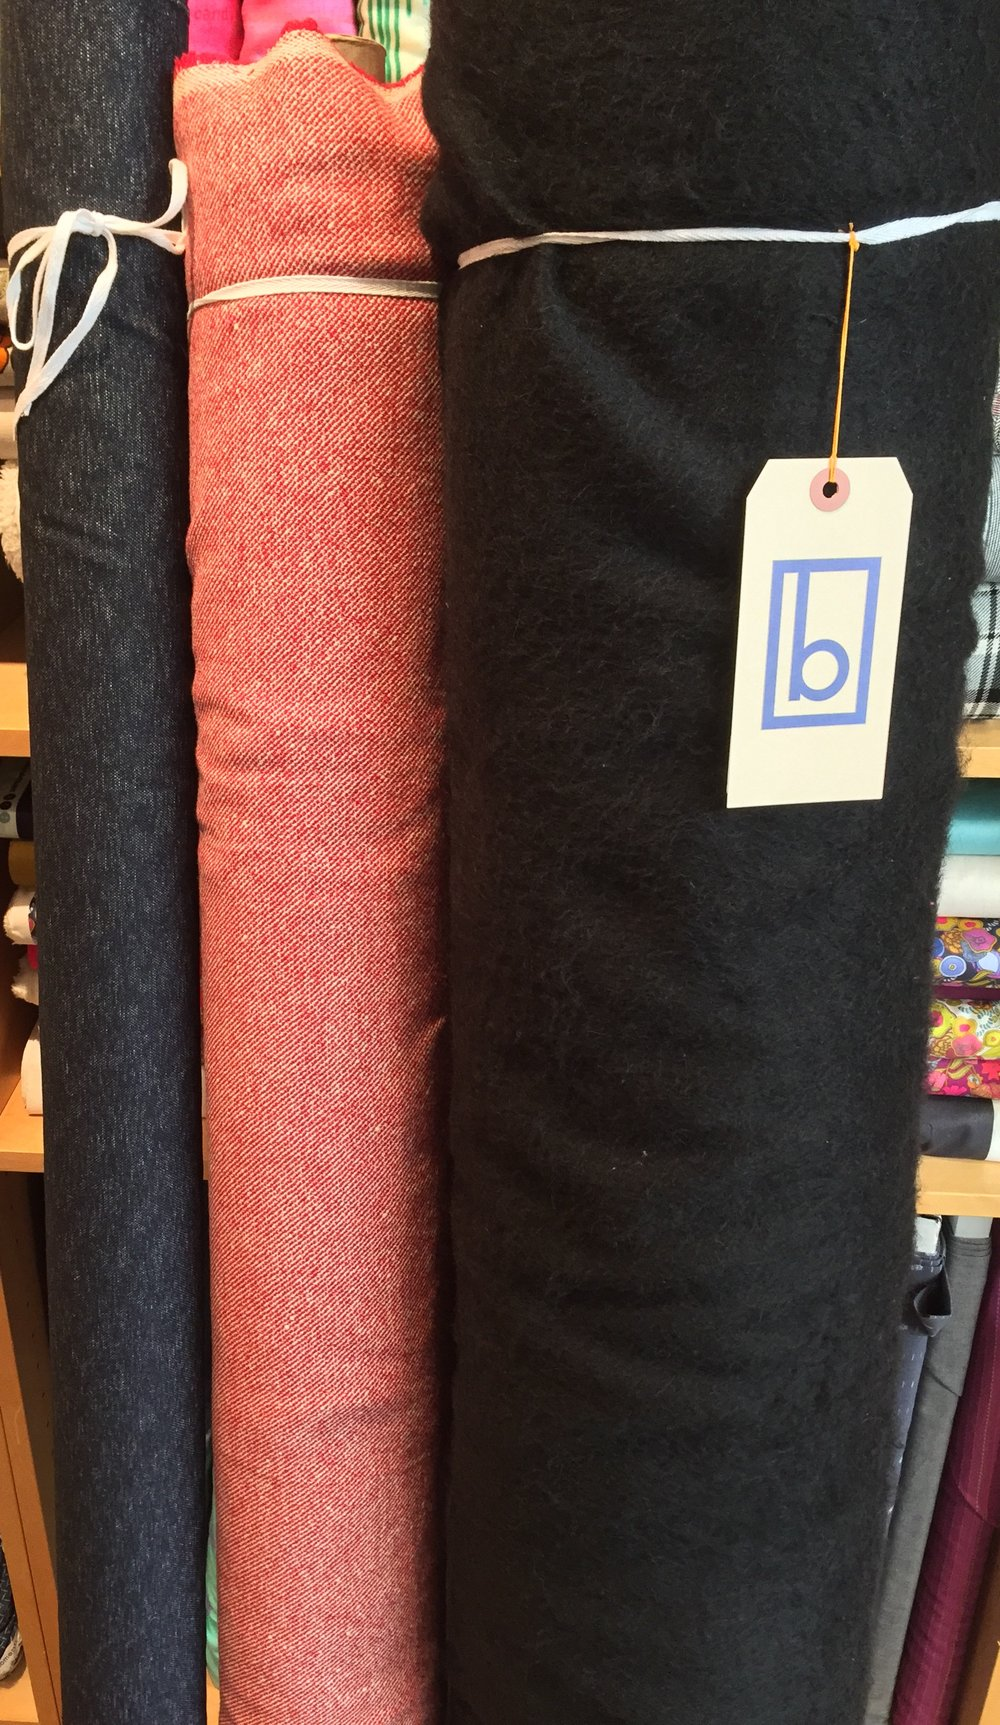 More wool blends: navy wool stretch tweed, red twill, and black acrylic fuzzy blend.